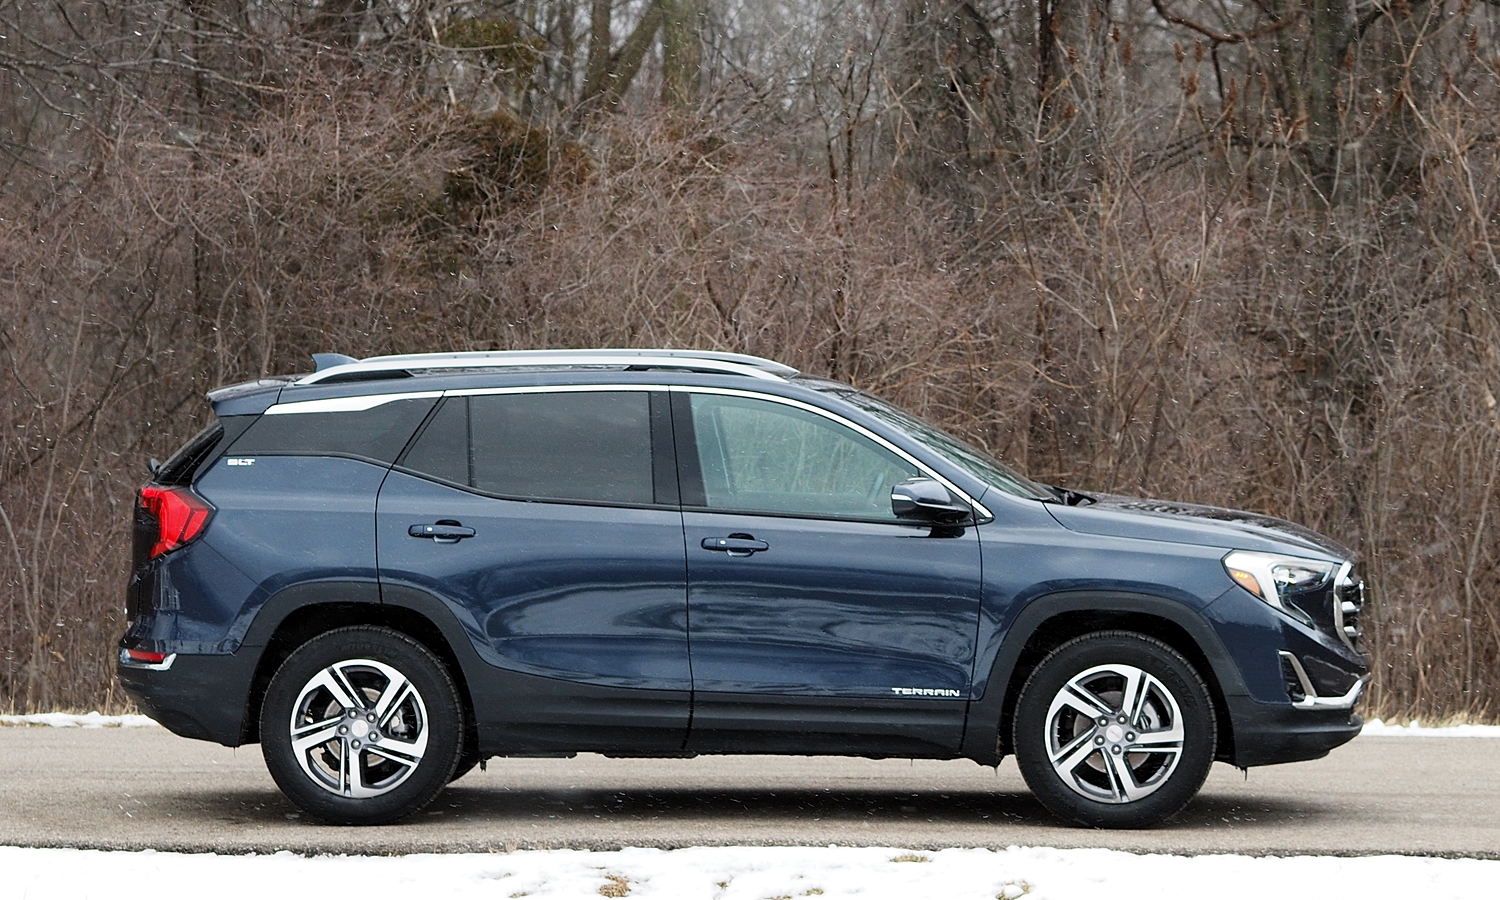 GMC Terrain Photos: 2018 GMC Terrain side view